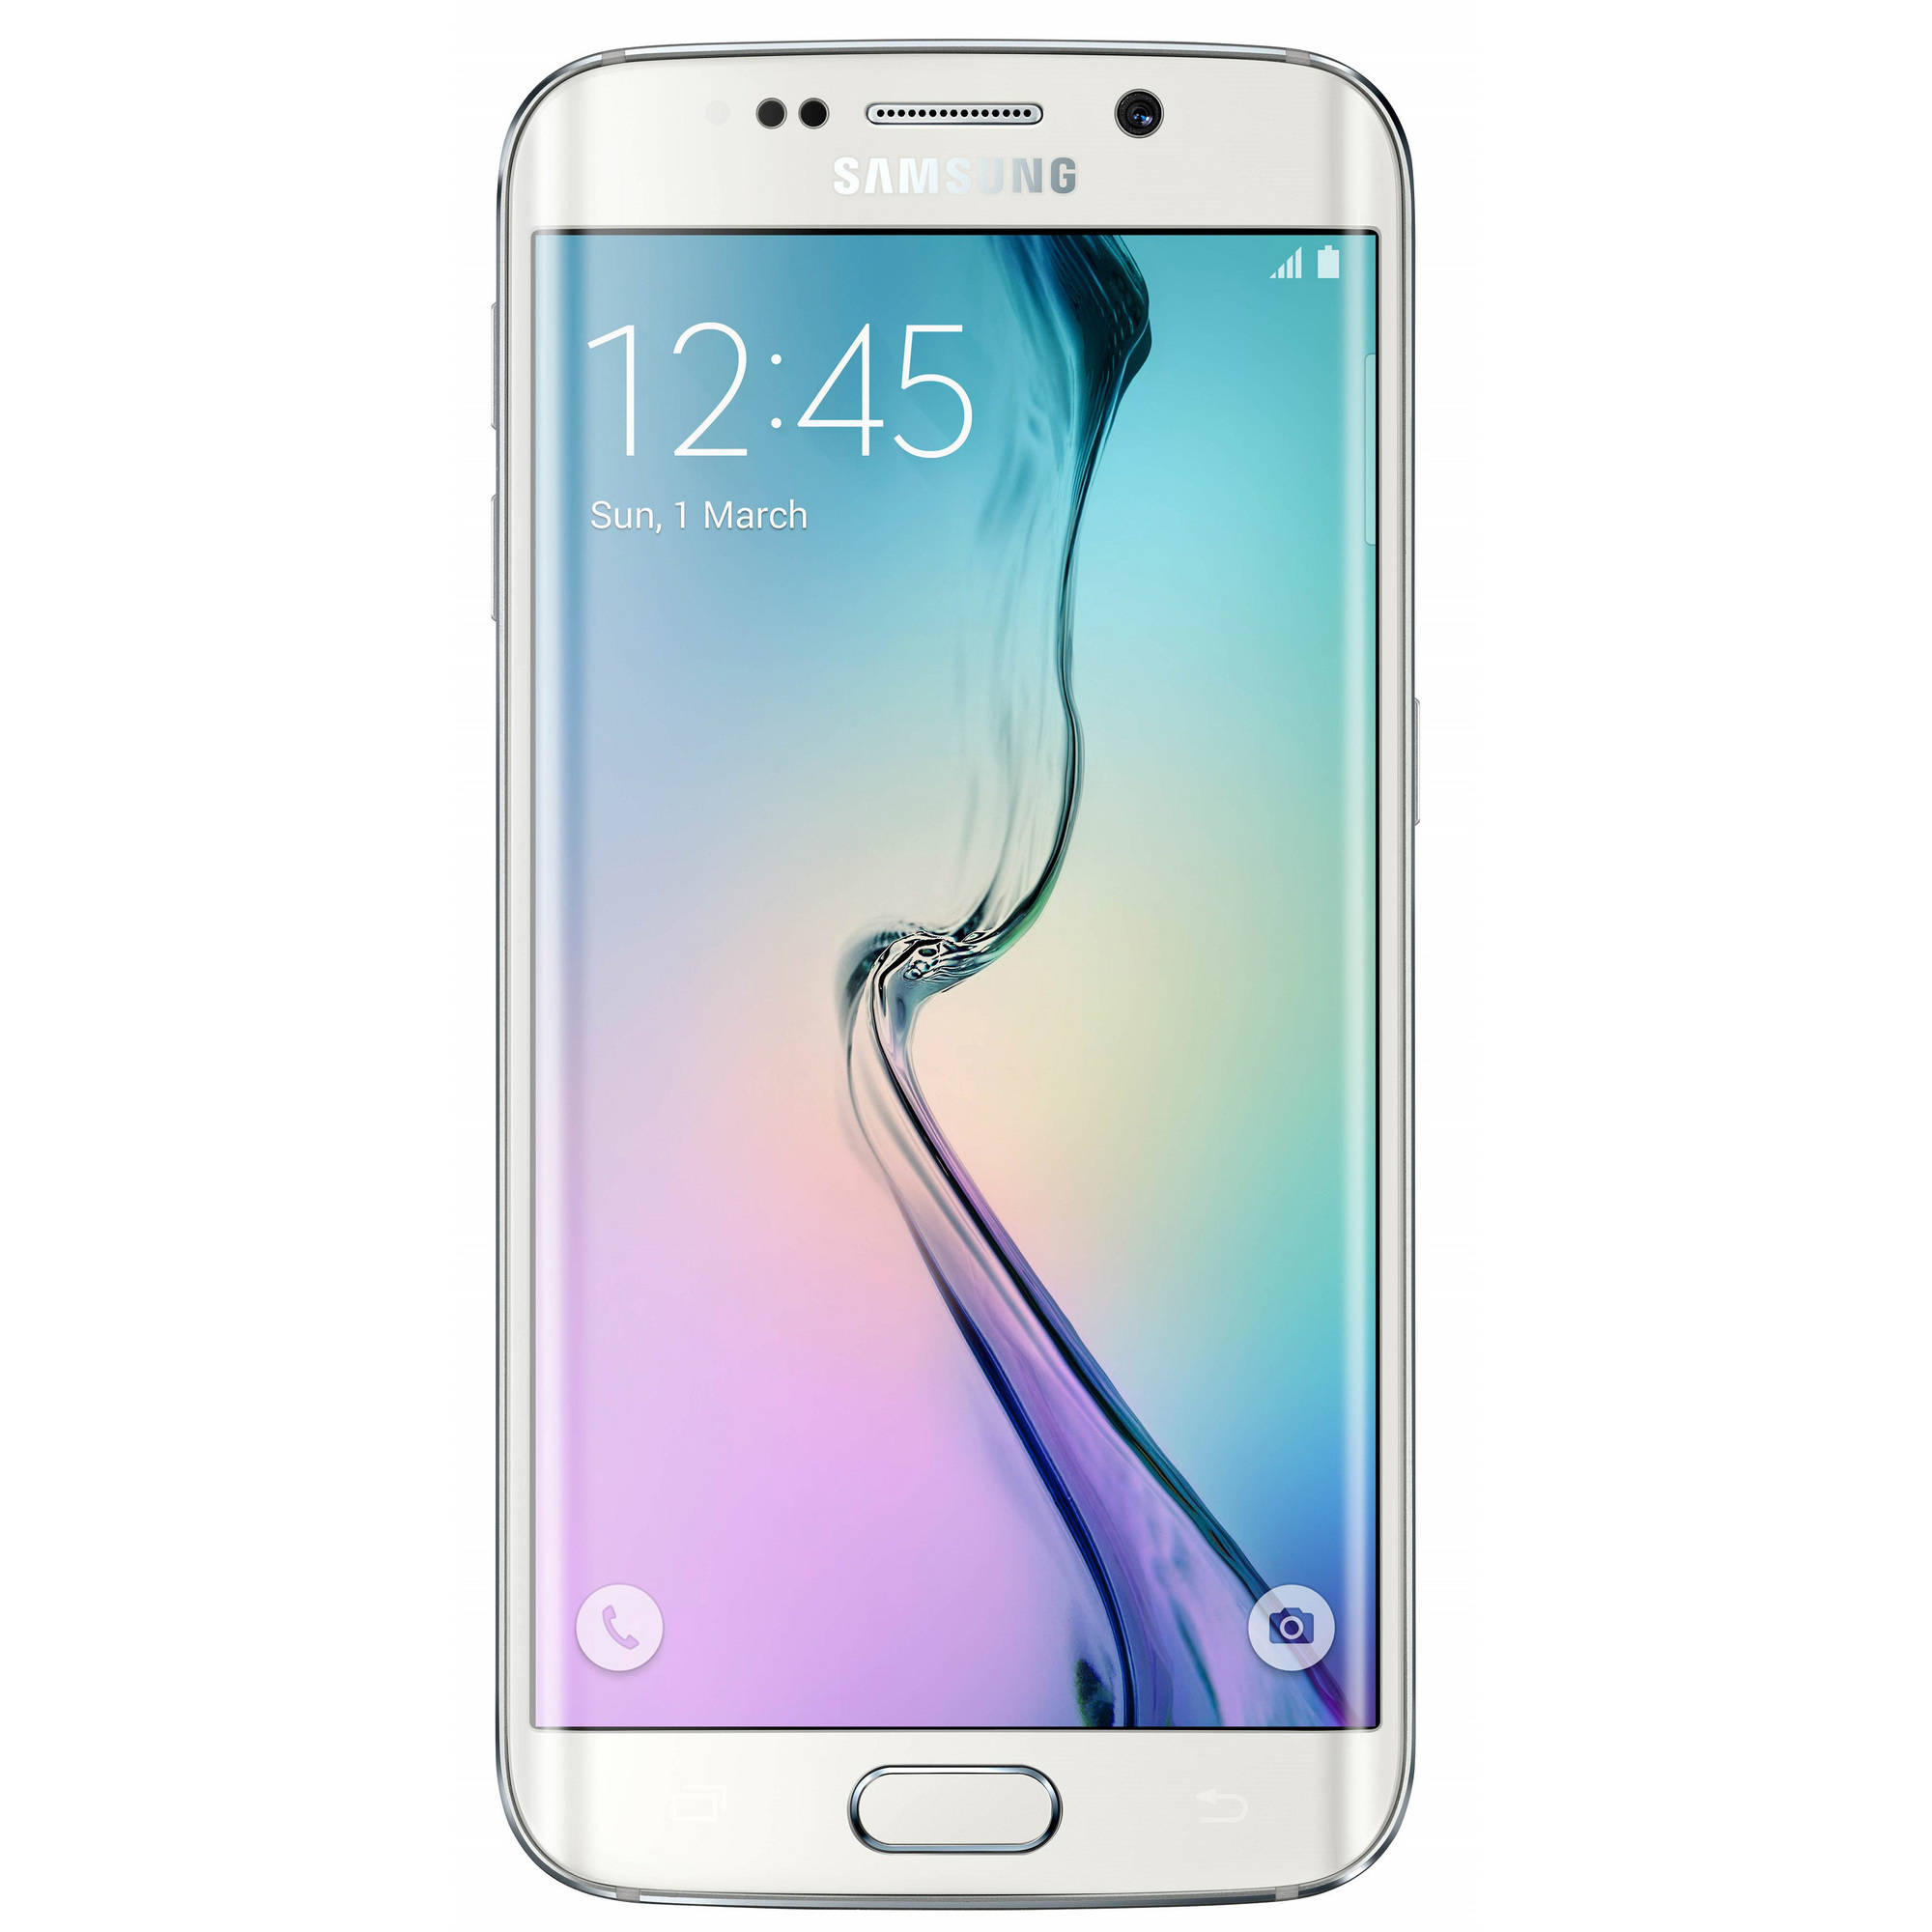 AT&T Samsung Galaxy S6 edge G925A 32GB Smartphone (Unlocked), White